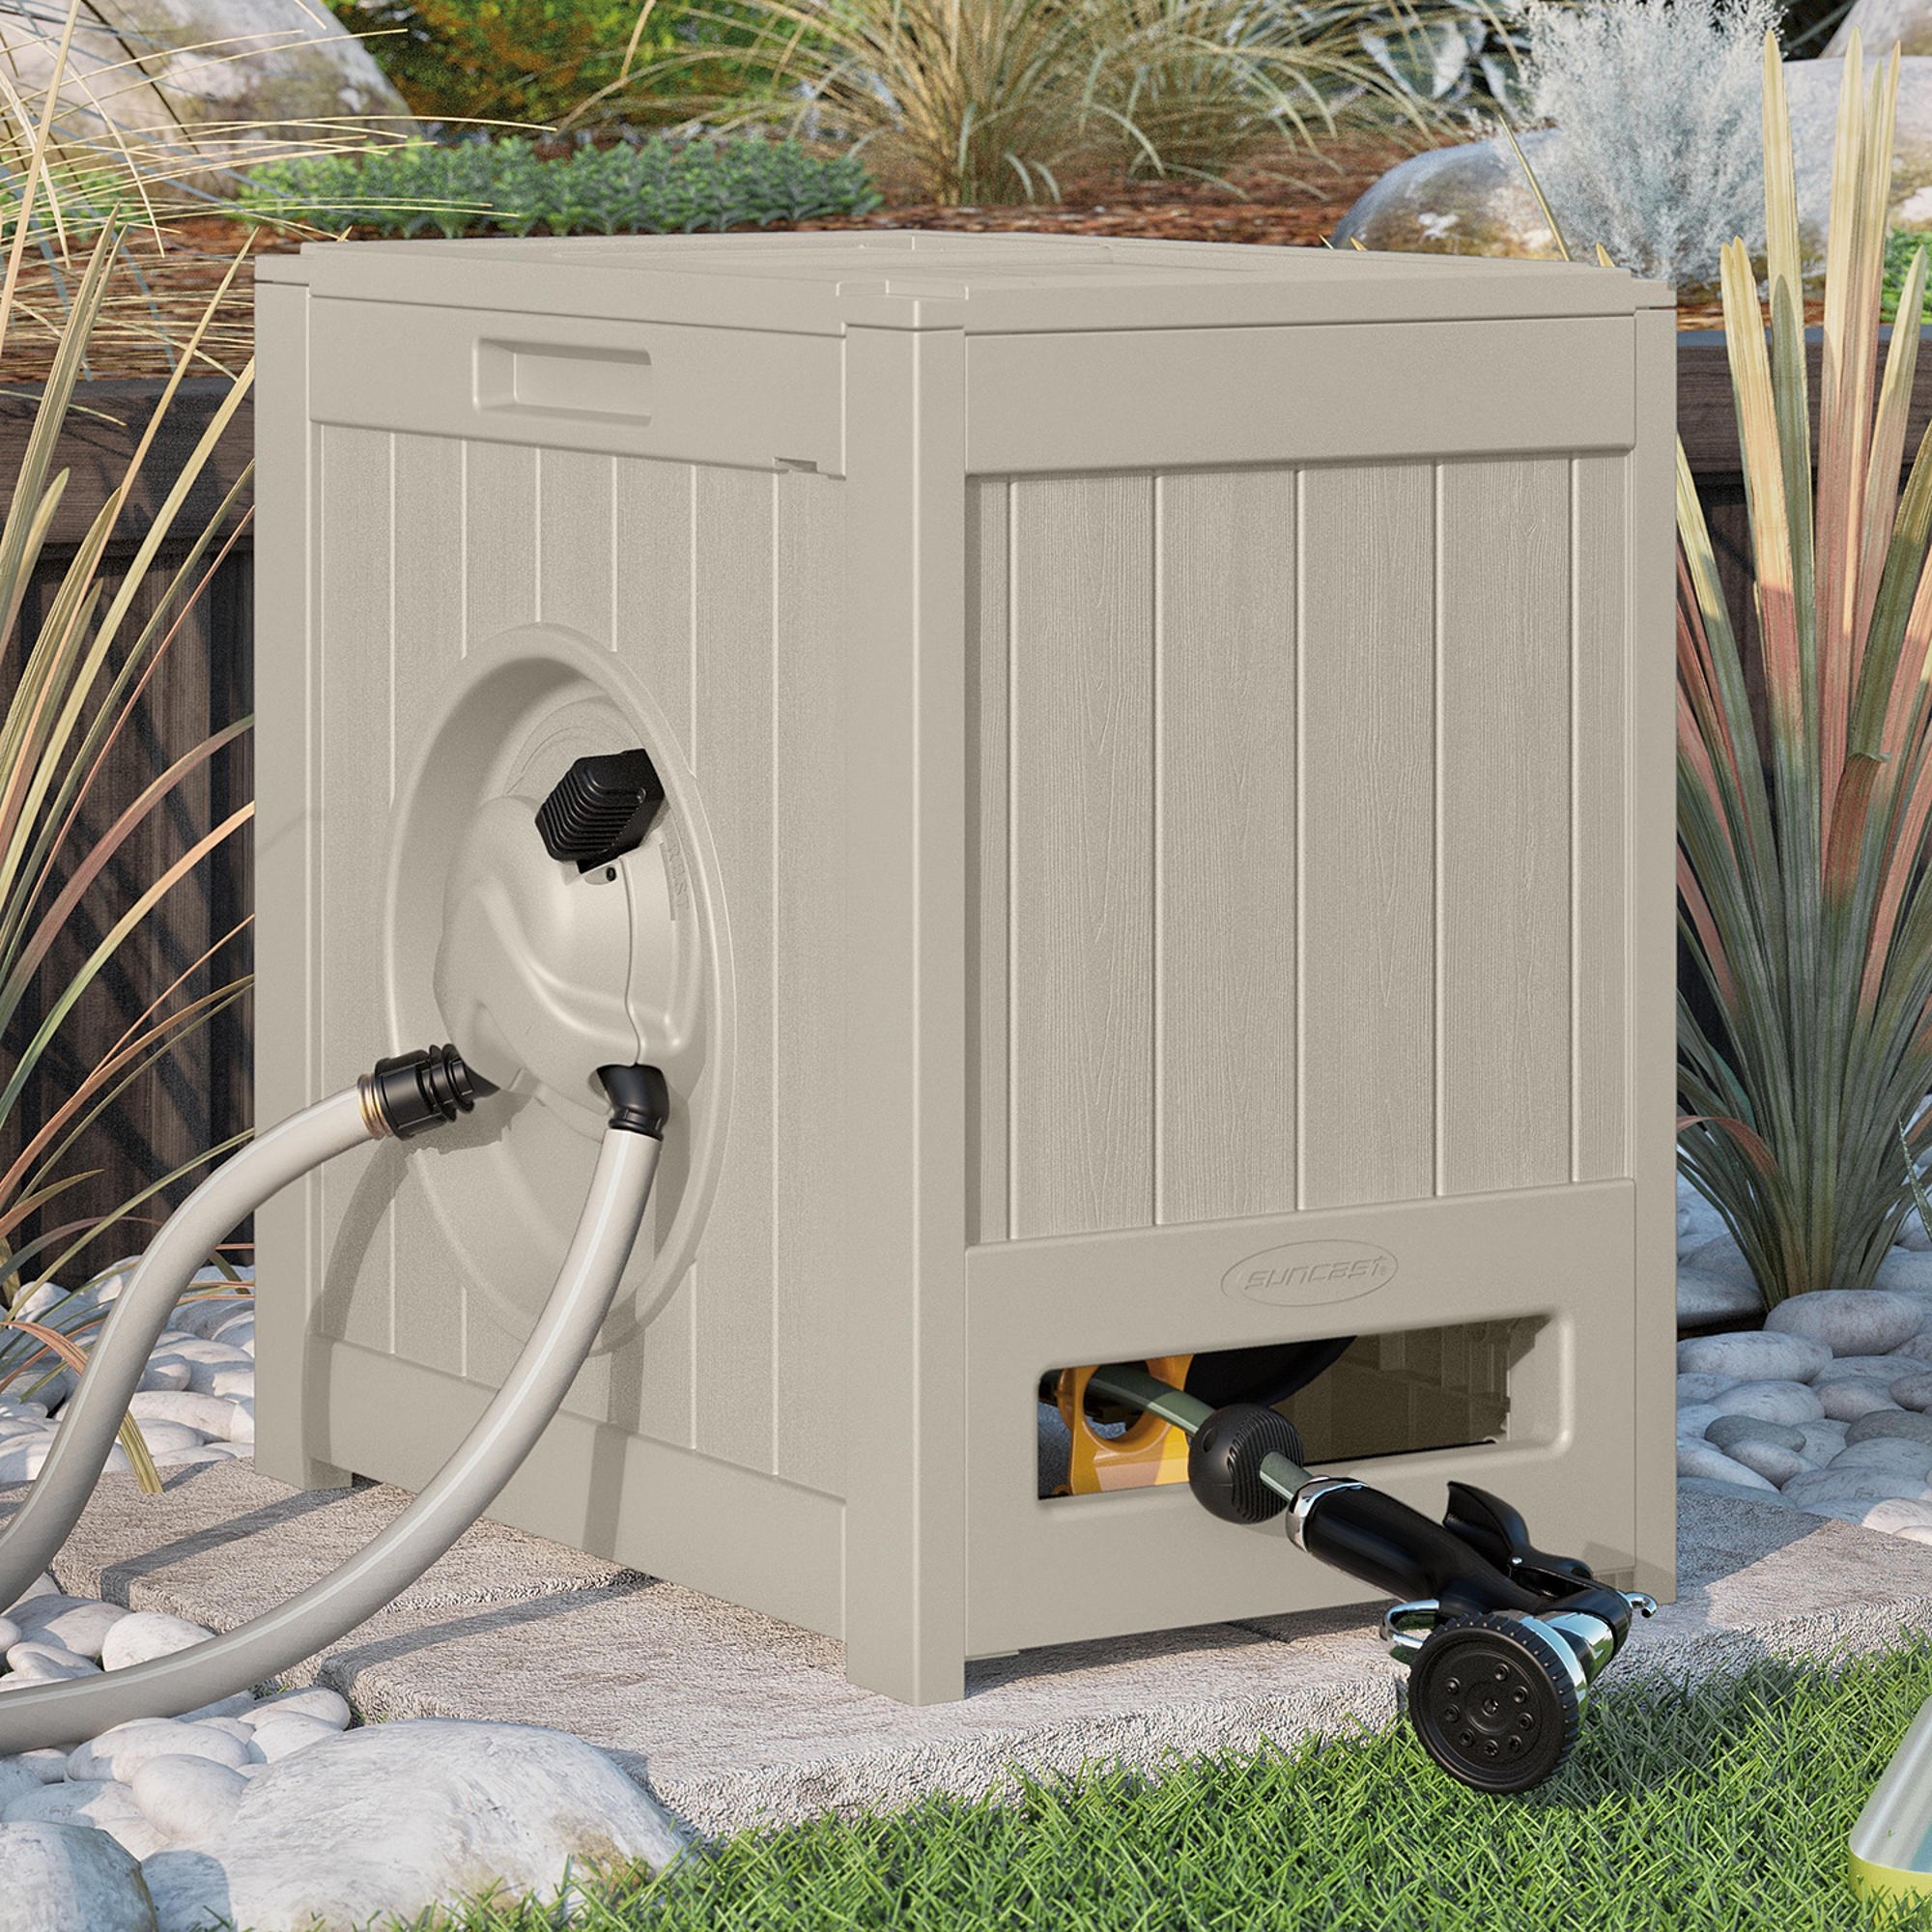 Suncast Hose Reel Crate. Best Water Powered Hideaway For Flexible Water Pipe. Self Winding Holder w/ Guide. Perfect For Garden, Yard, Backyard, Patio, Poolside, Lawn Cleaning & Car Wash. Space saver by Suncast